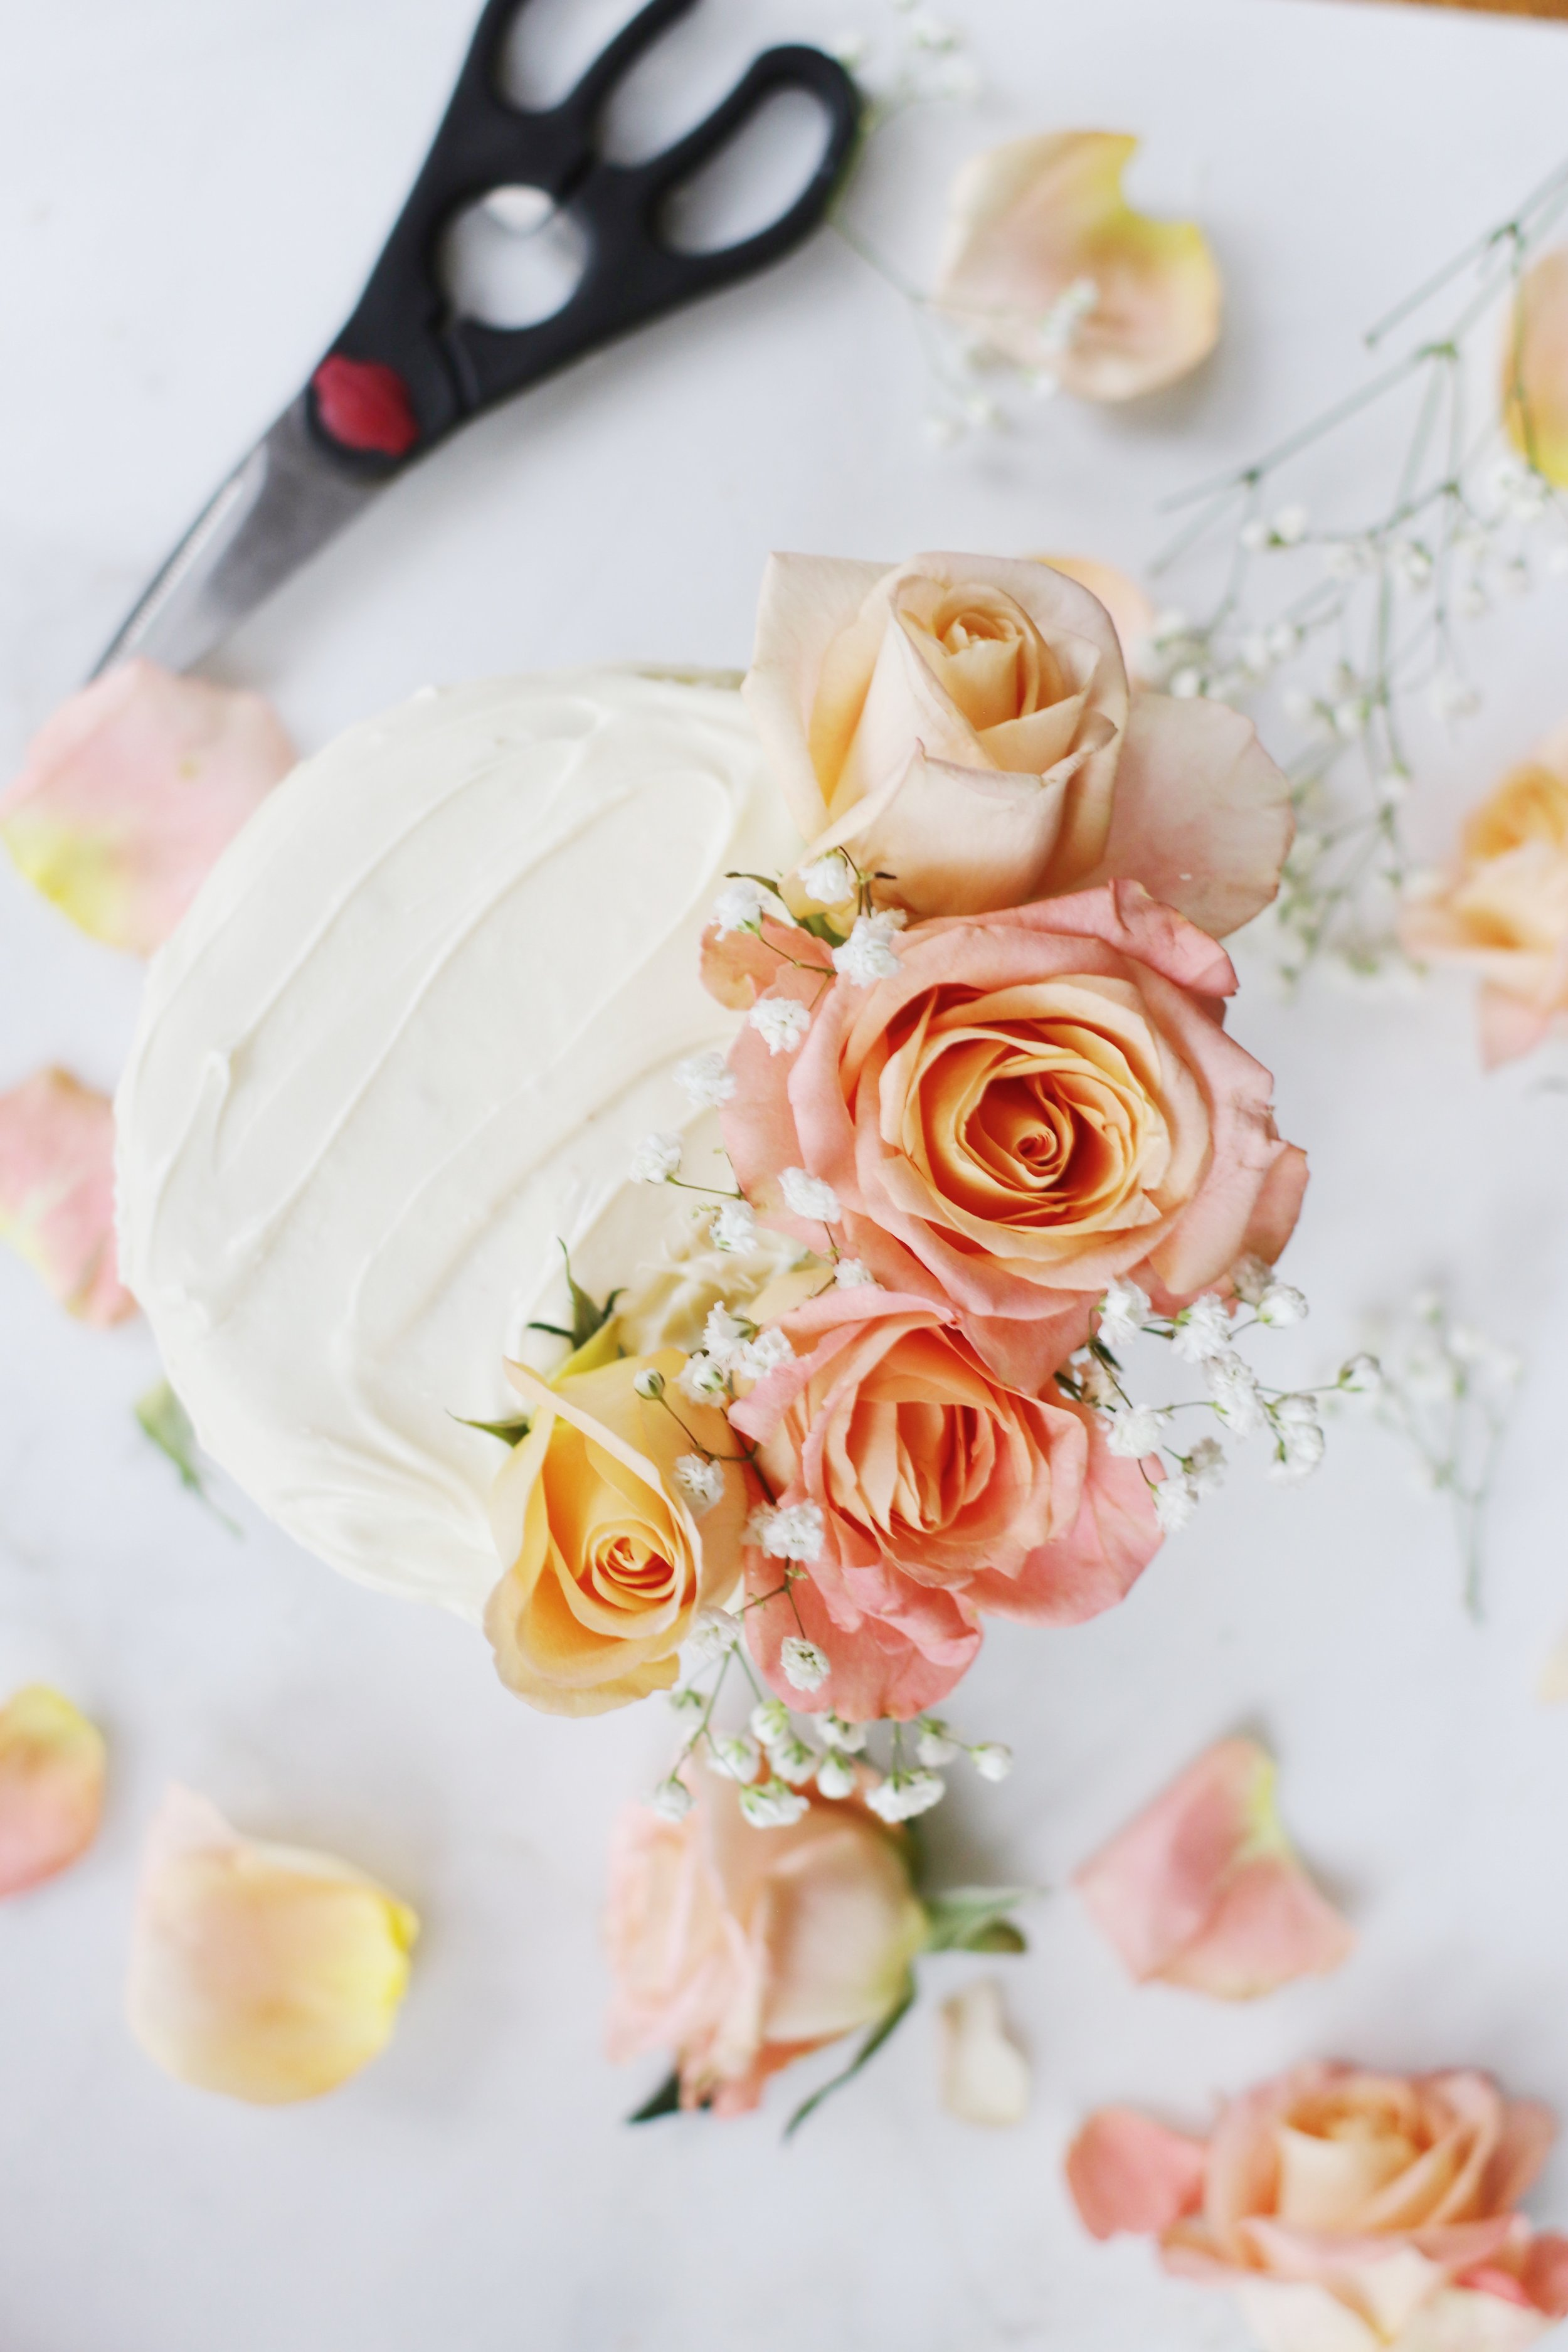 ombre-valentines-cake-flowers-11